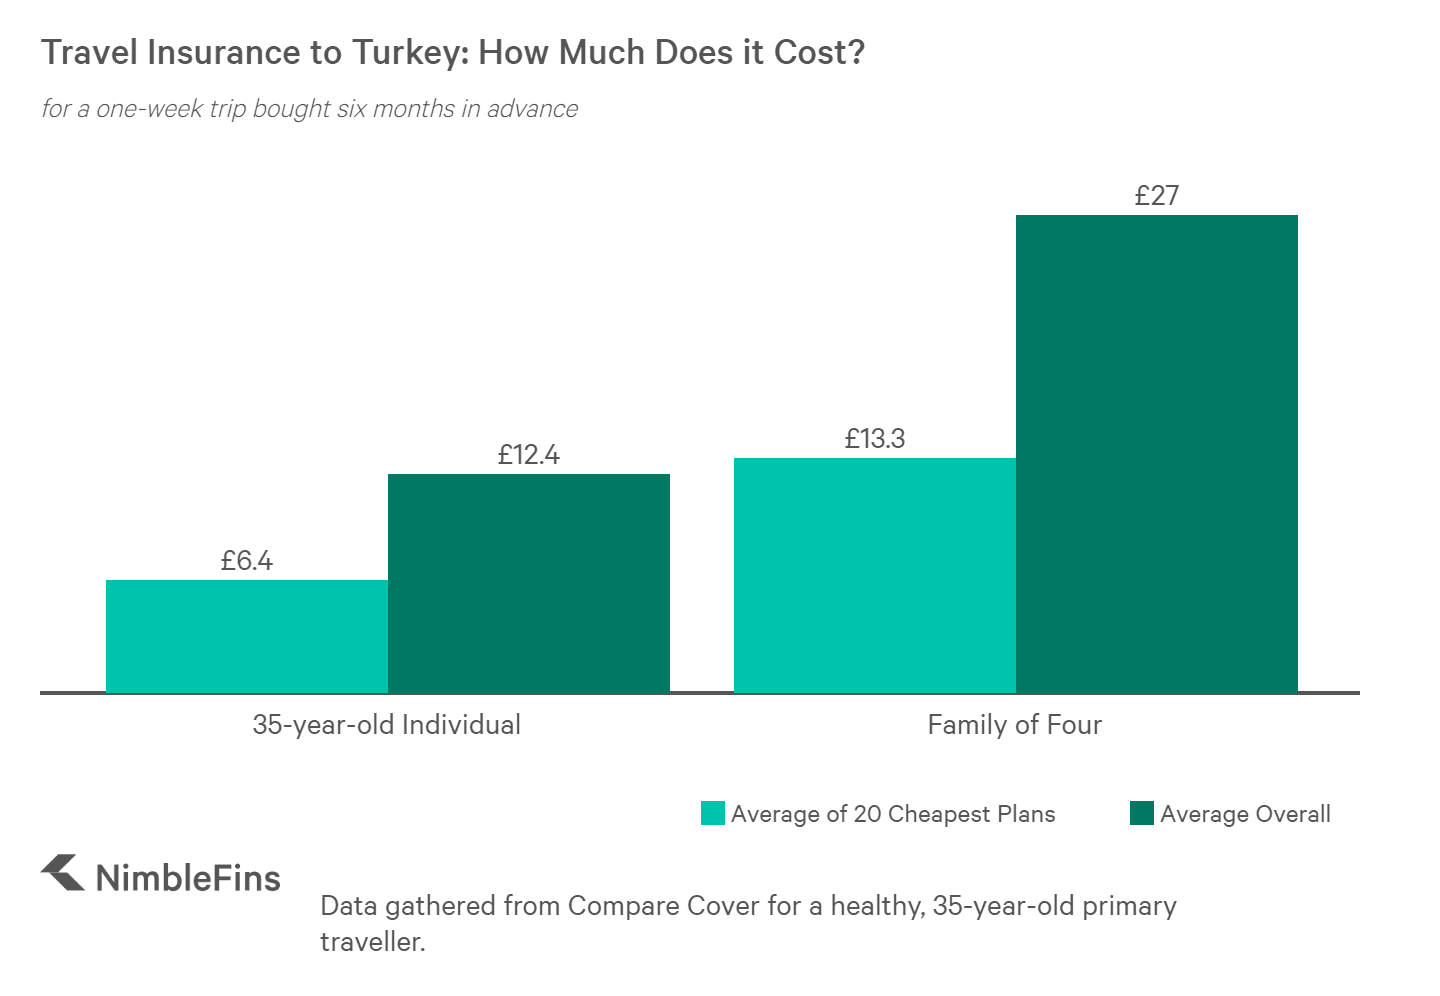 chart of average cost of travel insurance from UK to Turkey for individual and family